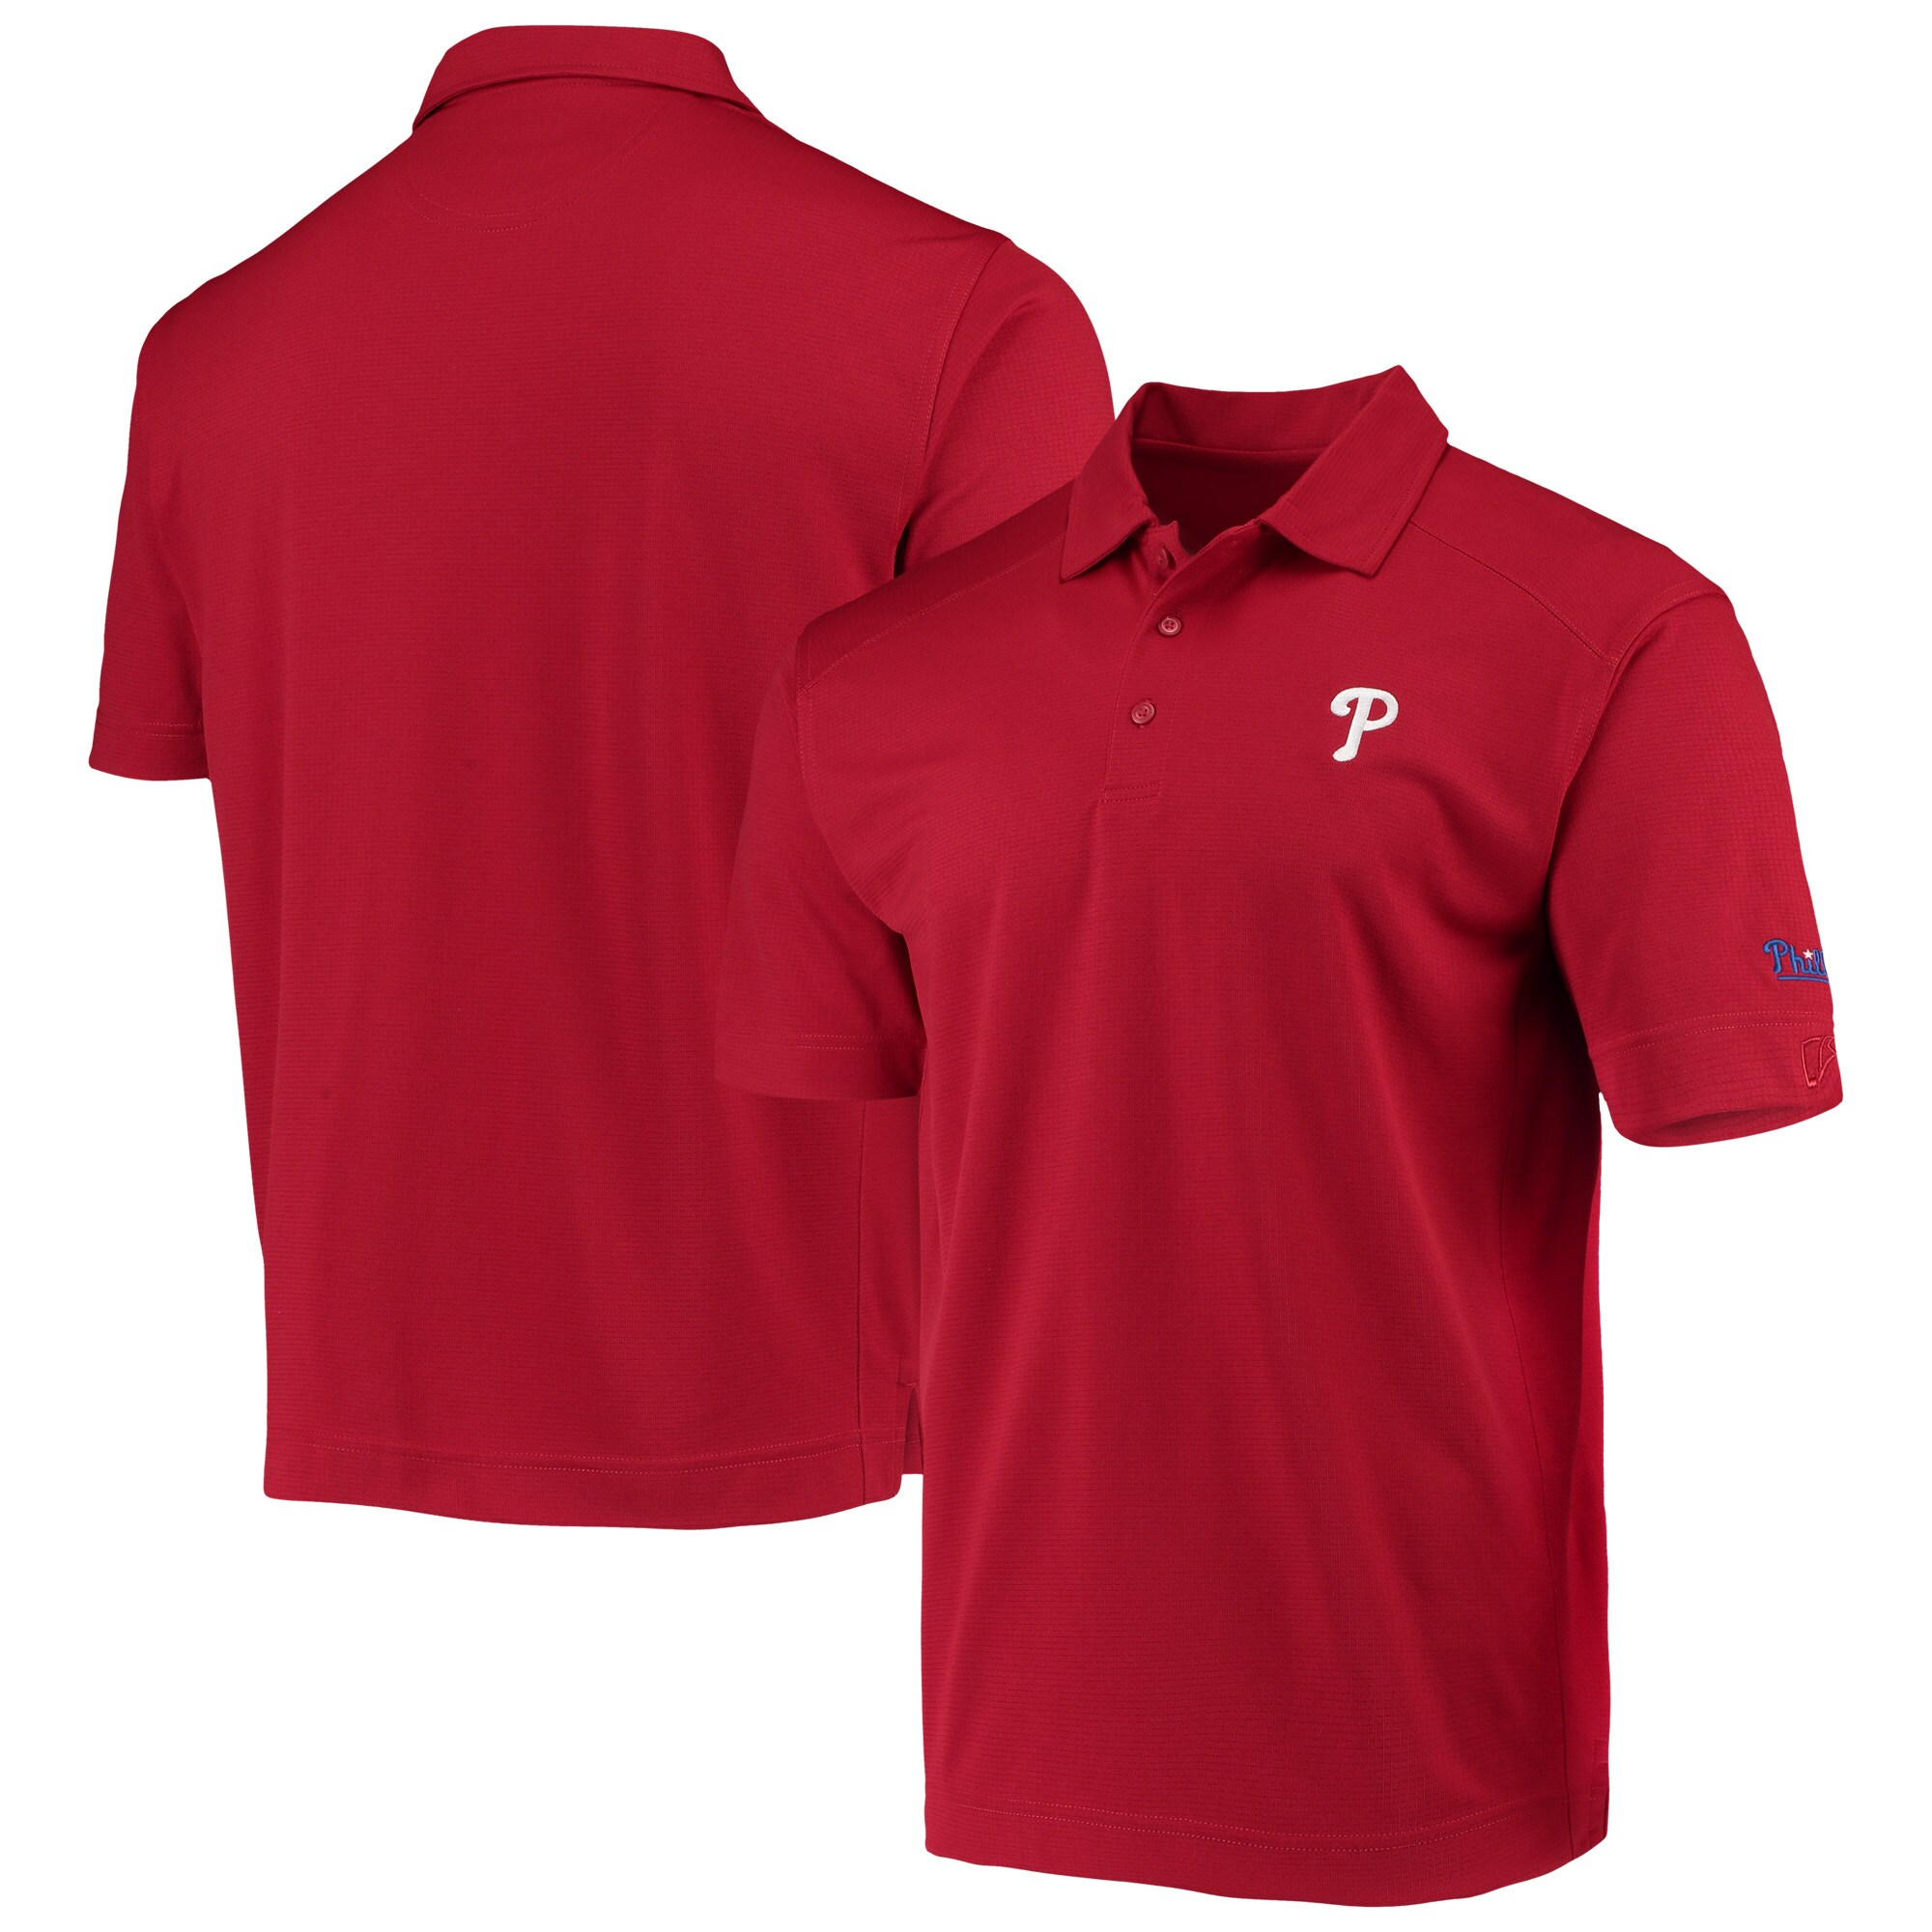 Philadelphia Phillies CBUK by Cutter & Buck Genre DryTec Polo - Red